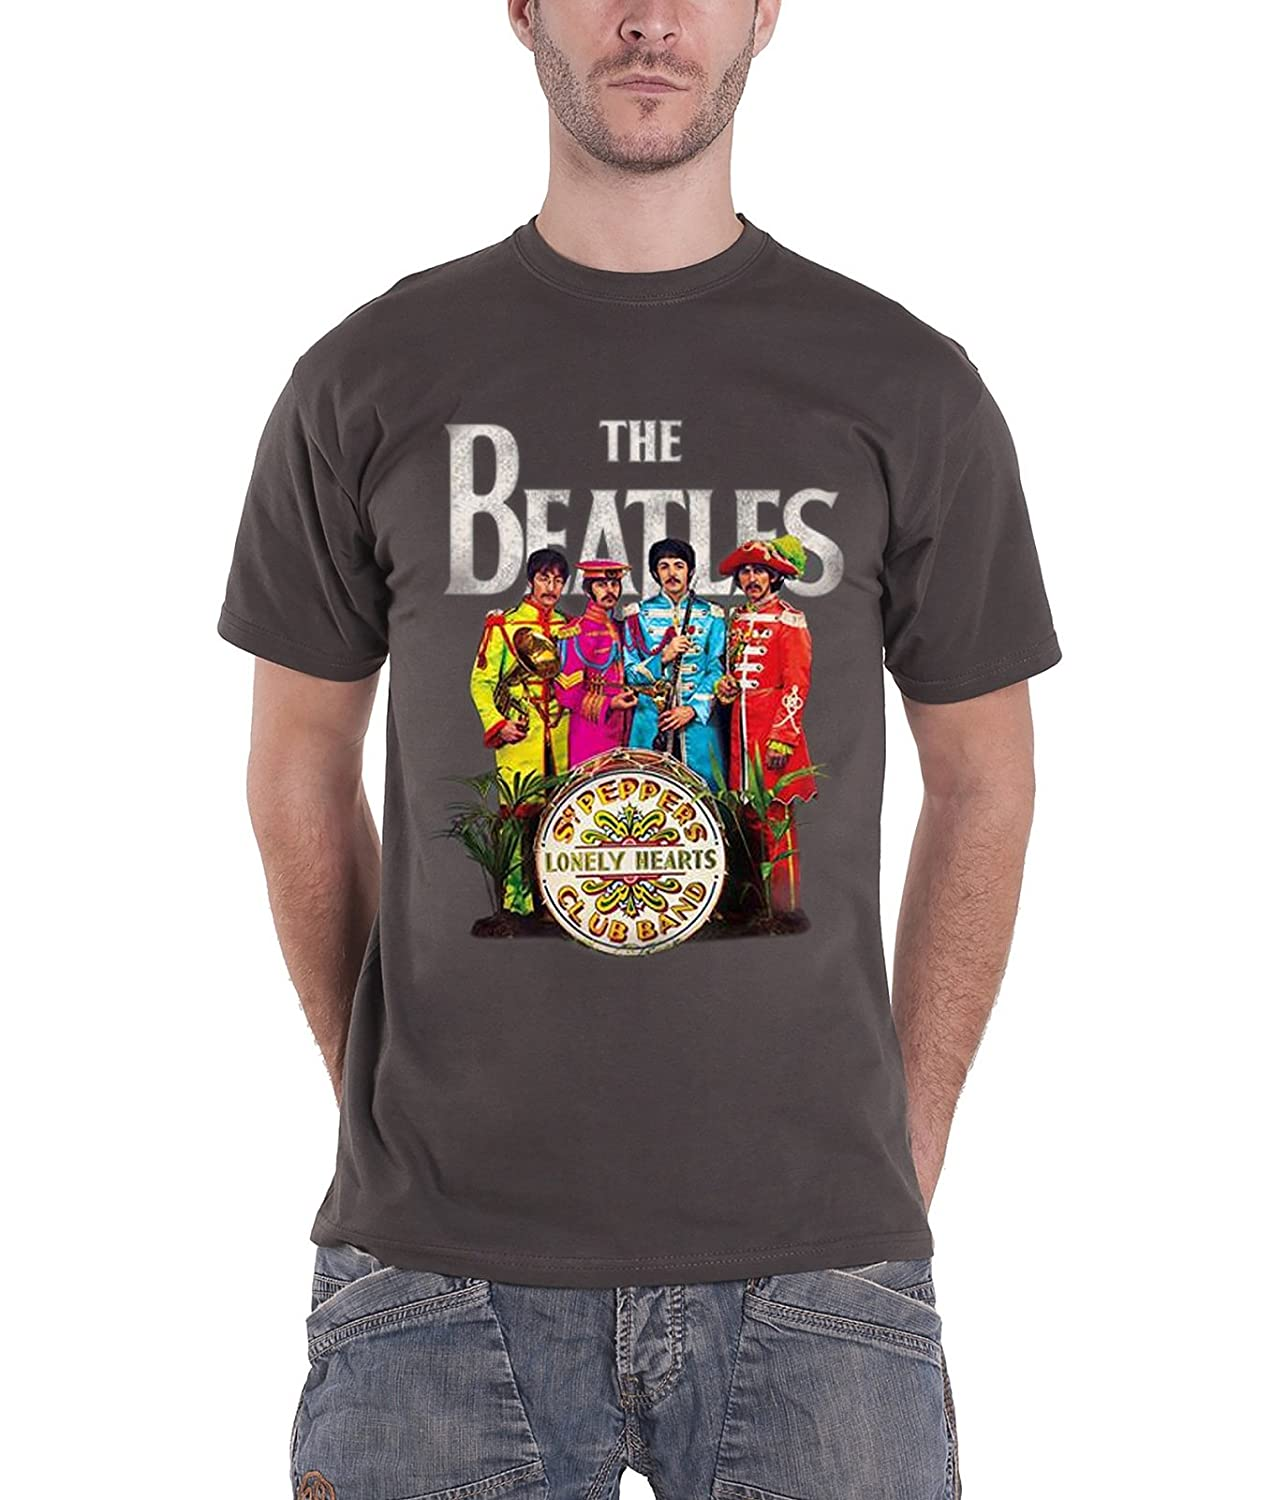 The Beatles T Shirt Sgt Pepper Lonely Hearts Drum Logo